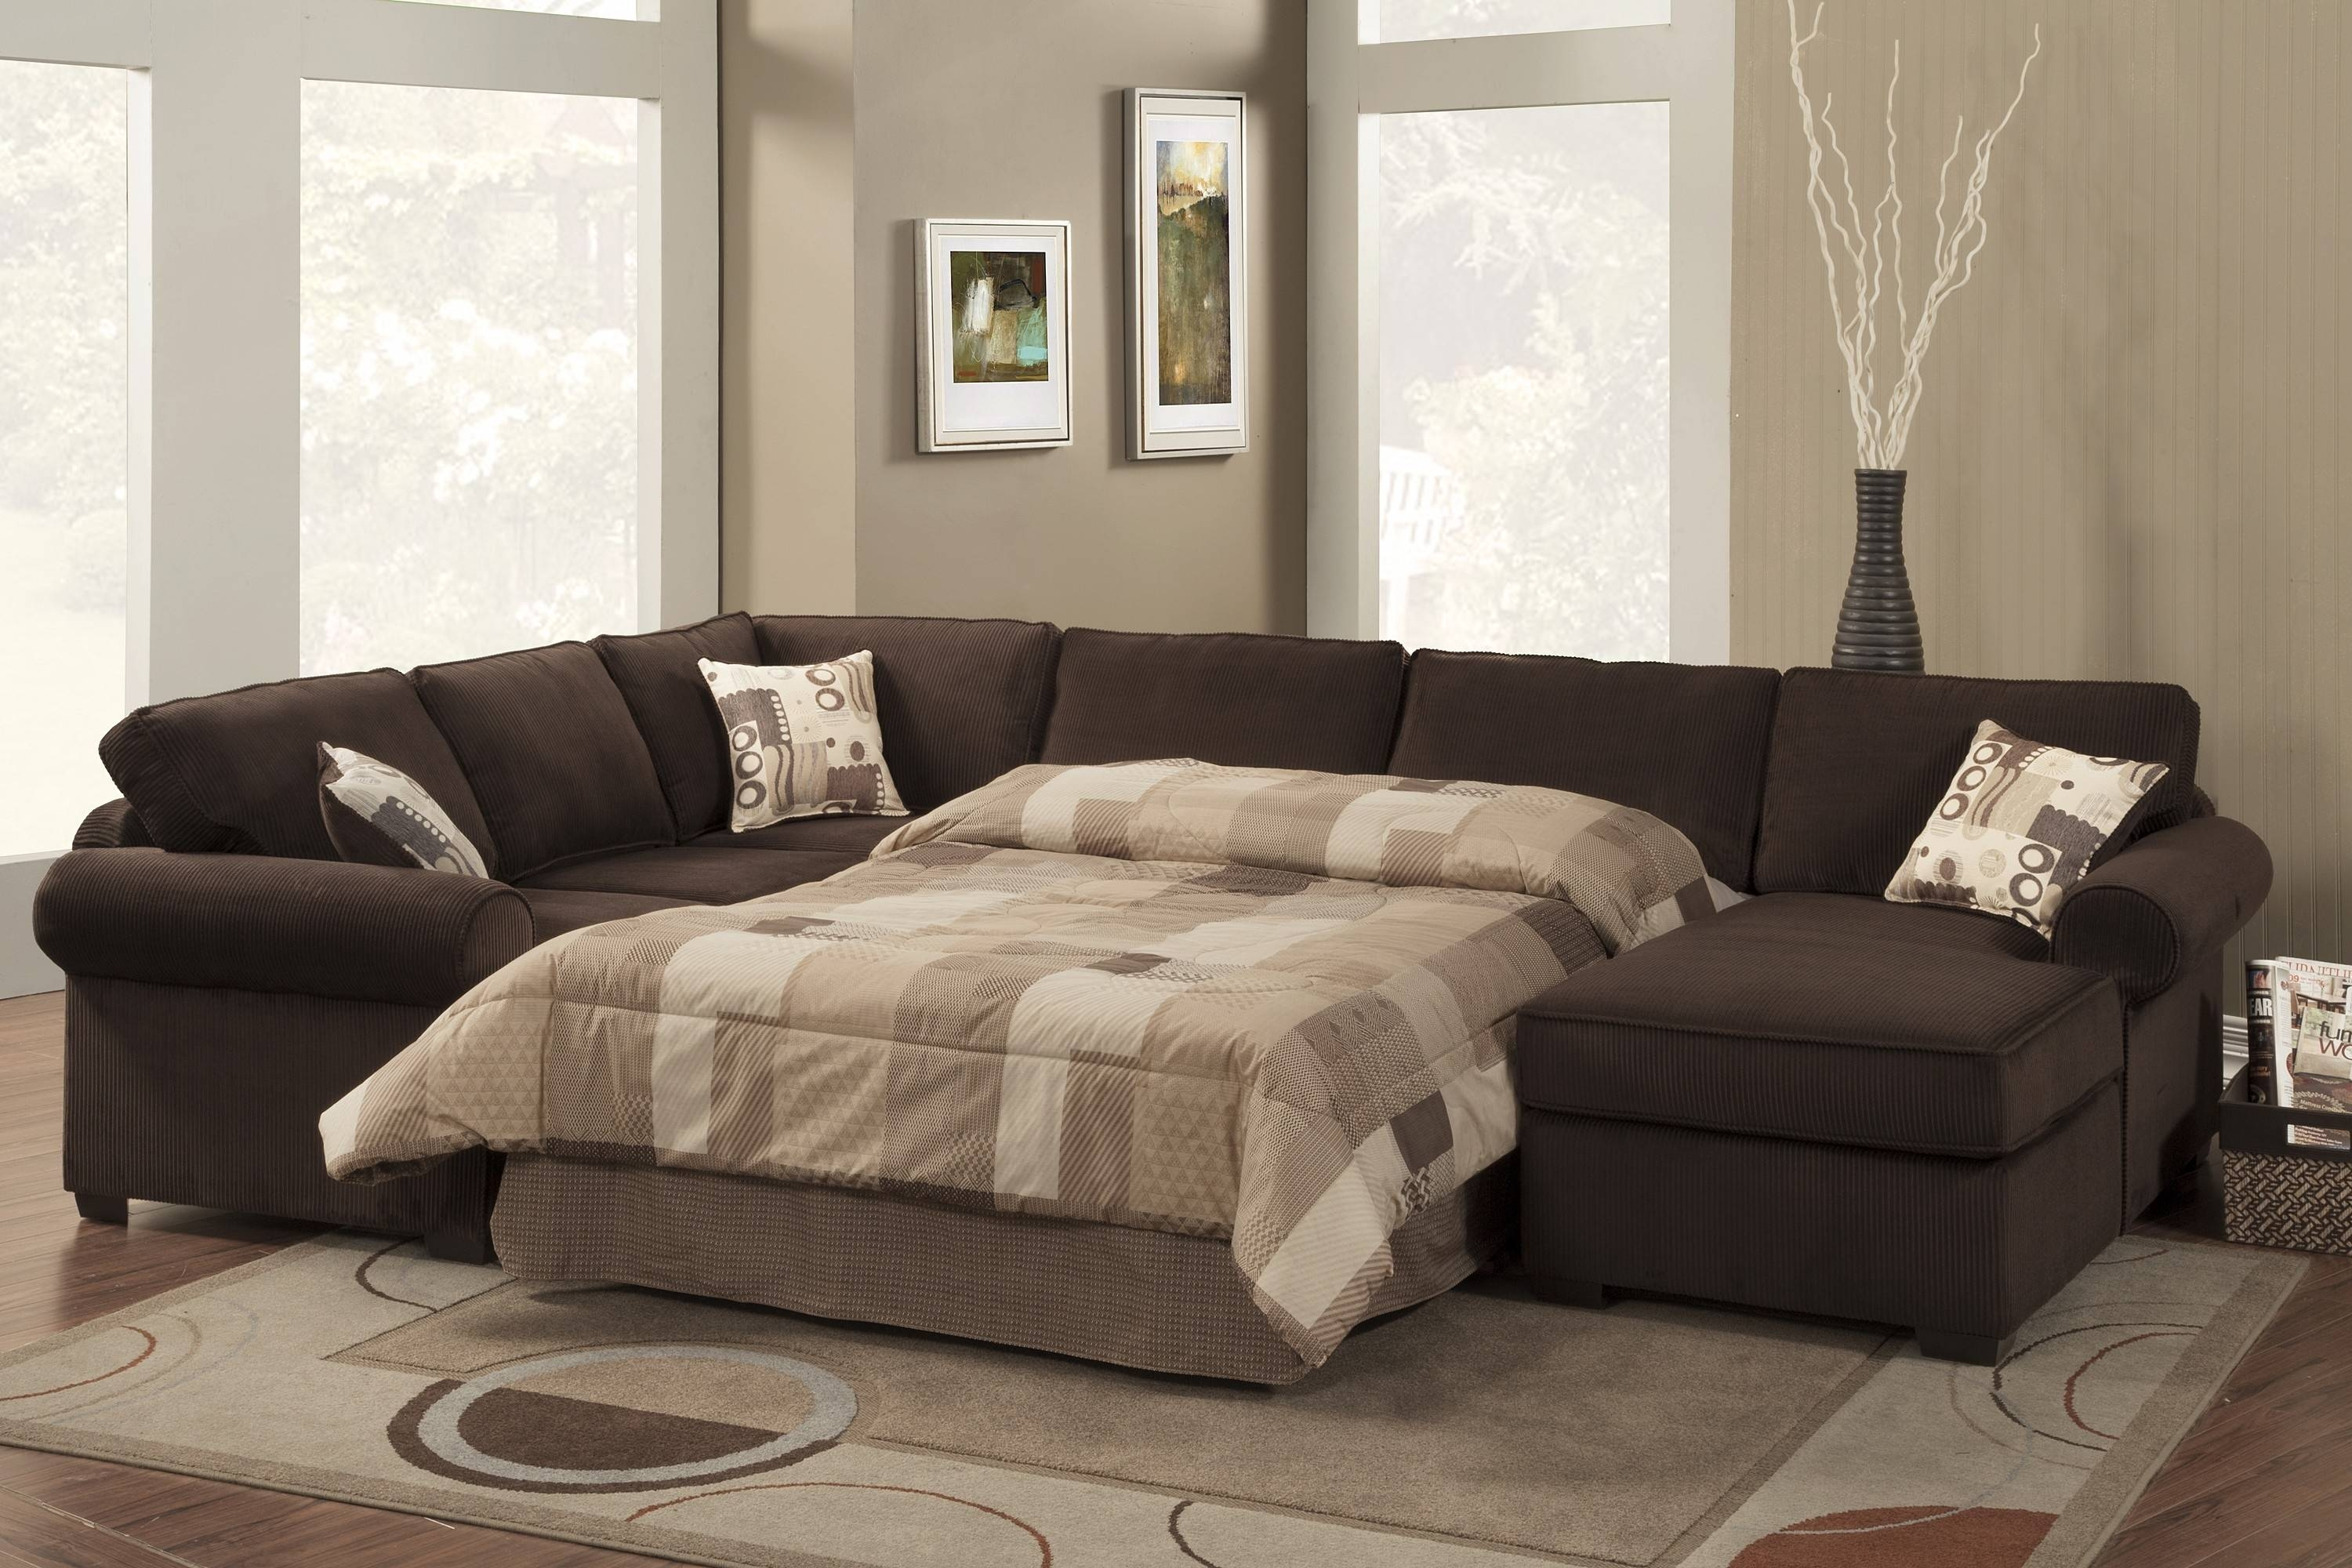 Sofa: Comfort And Style Is Evident In This Dynamic With Tufted With Sleeper Sectional Sofas (View 23 of 30)